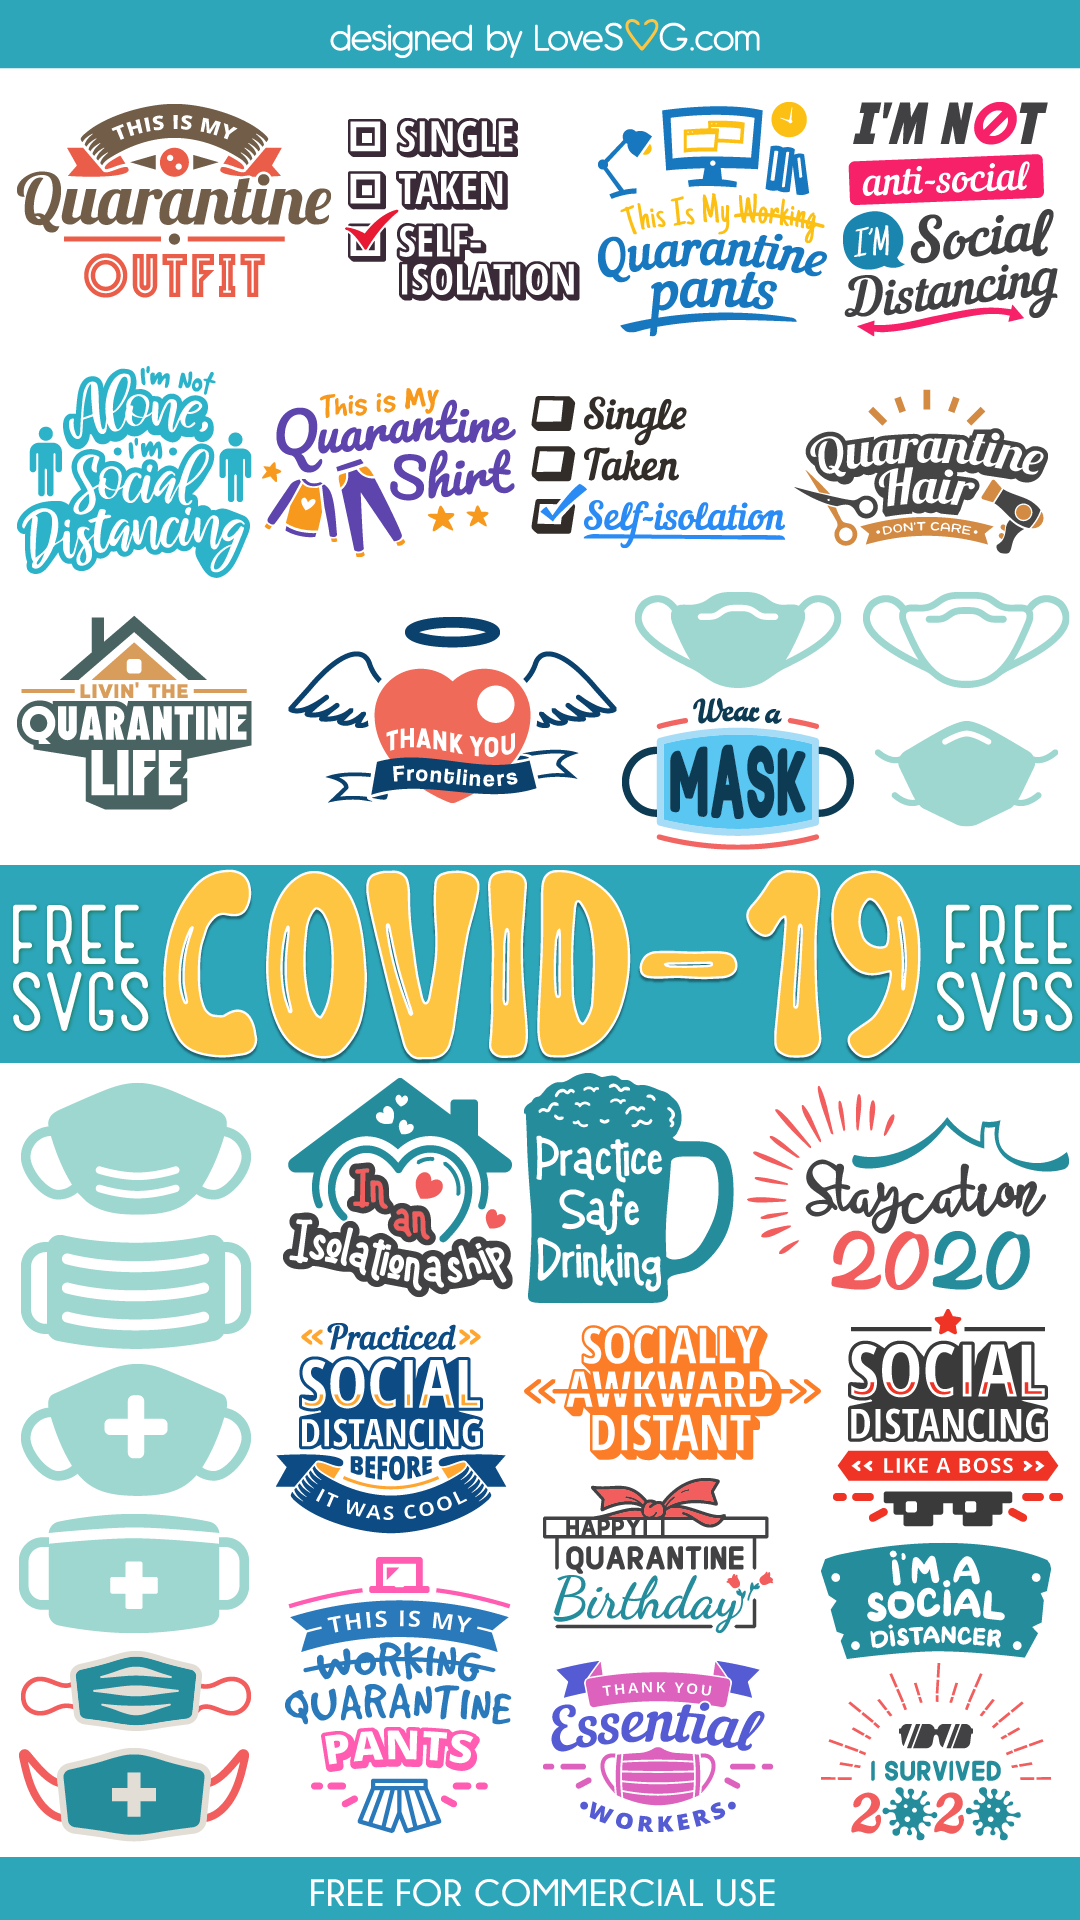 Free COVID-19 SVG Cut Files for Commercial Use